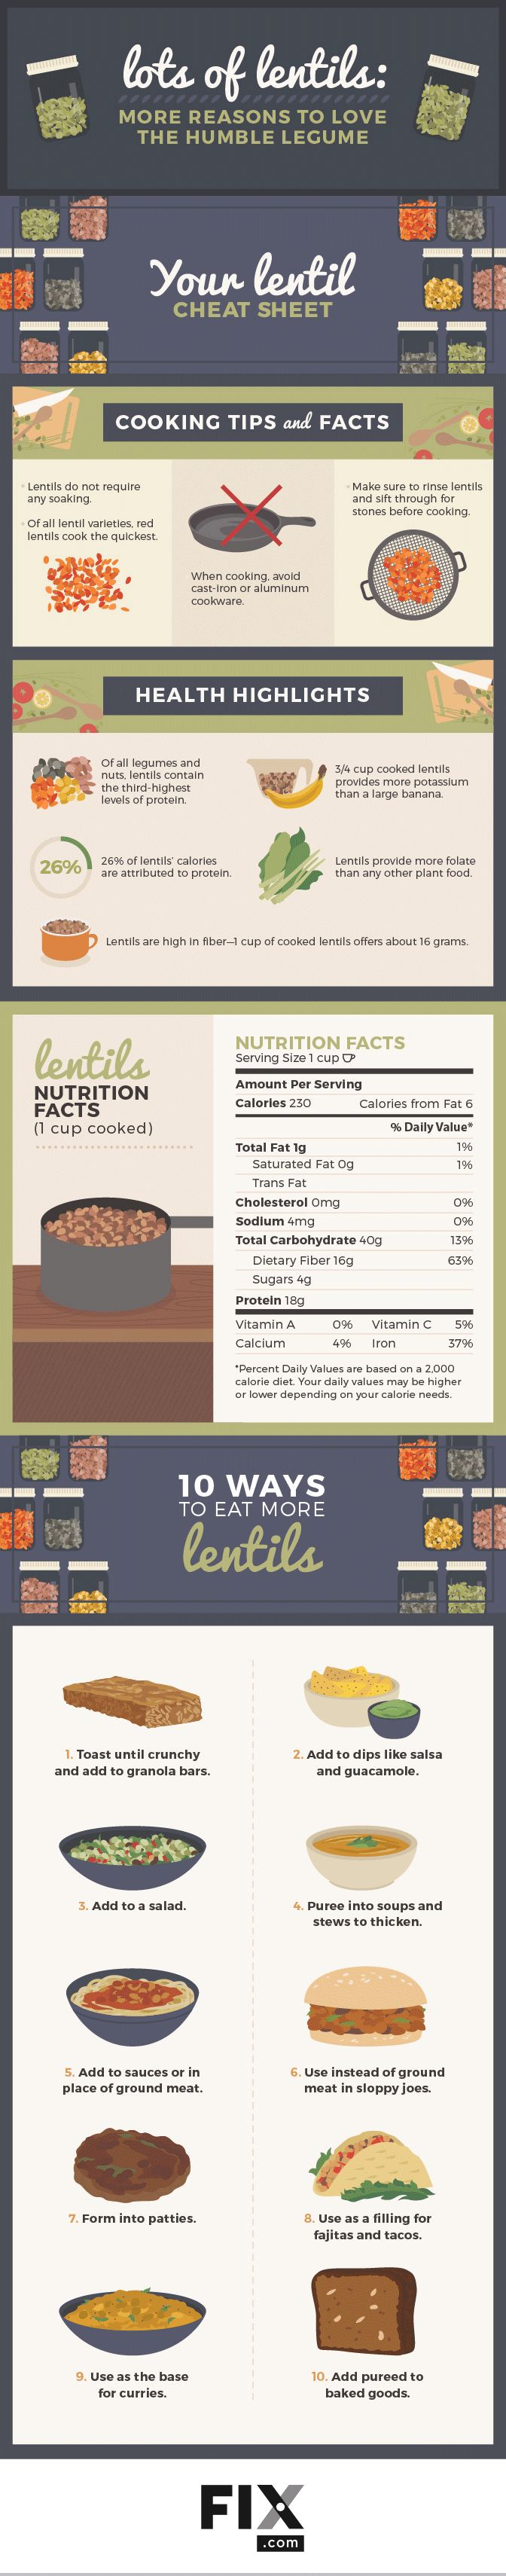 With 2016 being the International Year of Pulses, it's never been easier to add lentils to your diet! Learn tips and tricks for cooking with many different varieties!